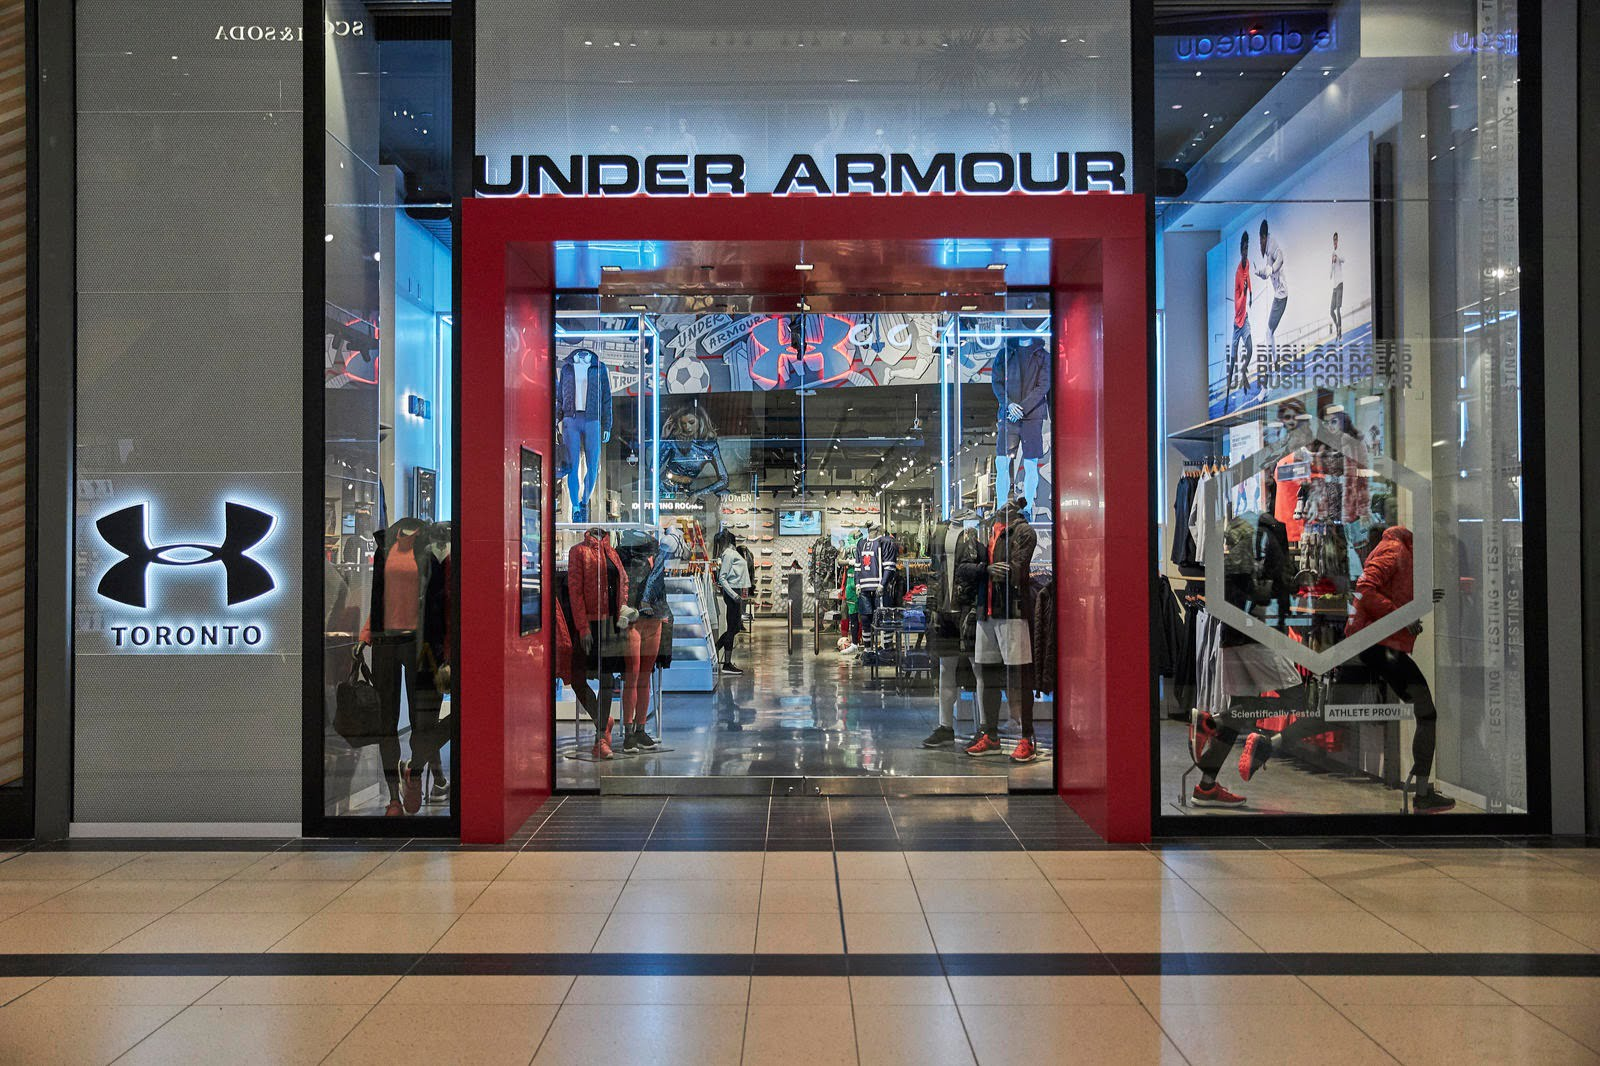 Hormiga carrera mayoria  Sportswear Brand 'Under Armour' Launches Canadian Store Expansion with 1st  Location [Photos] - Retail Insider